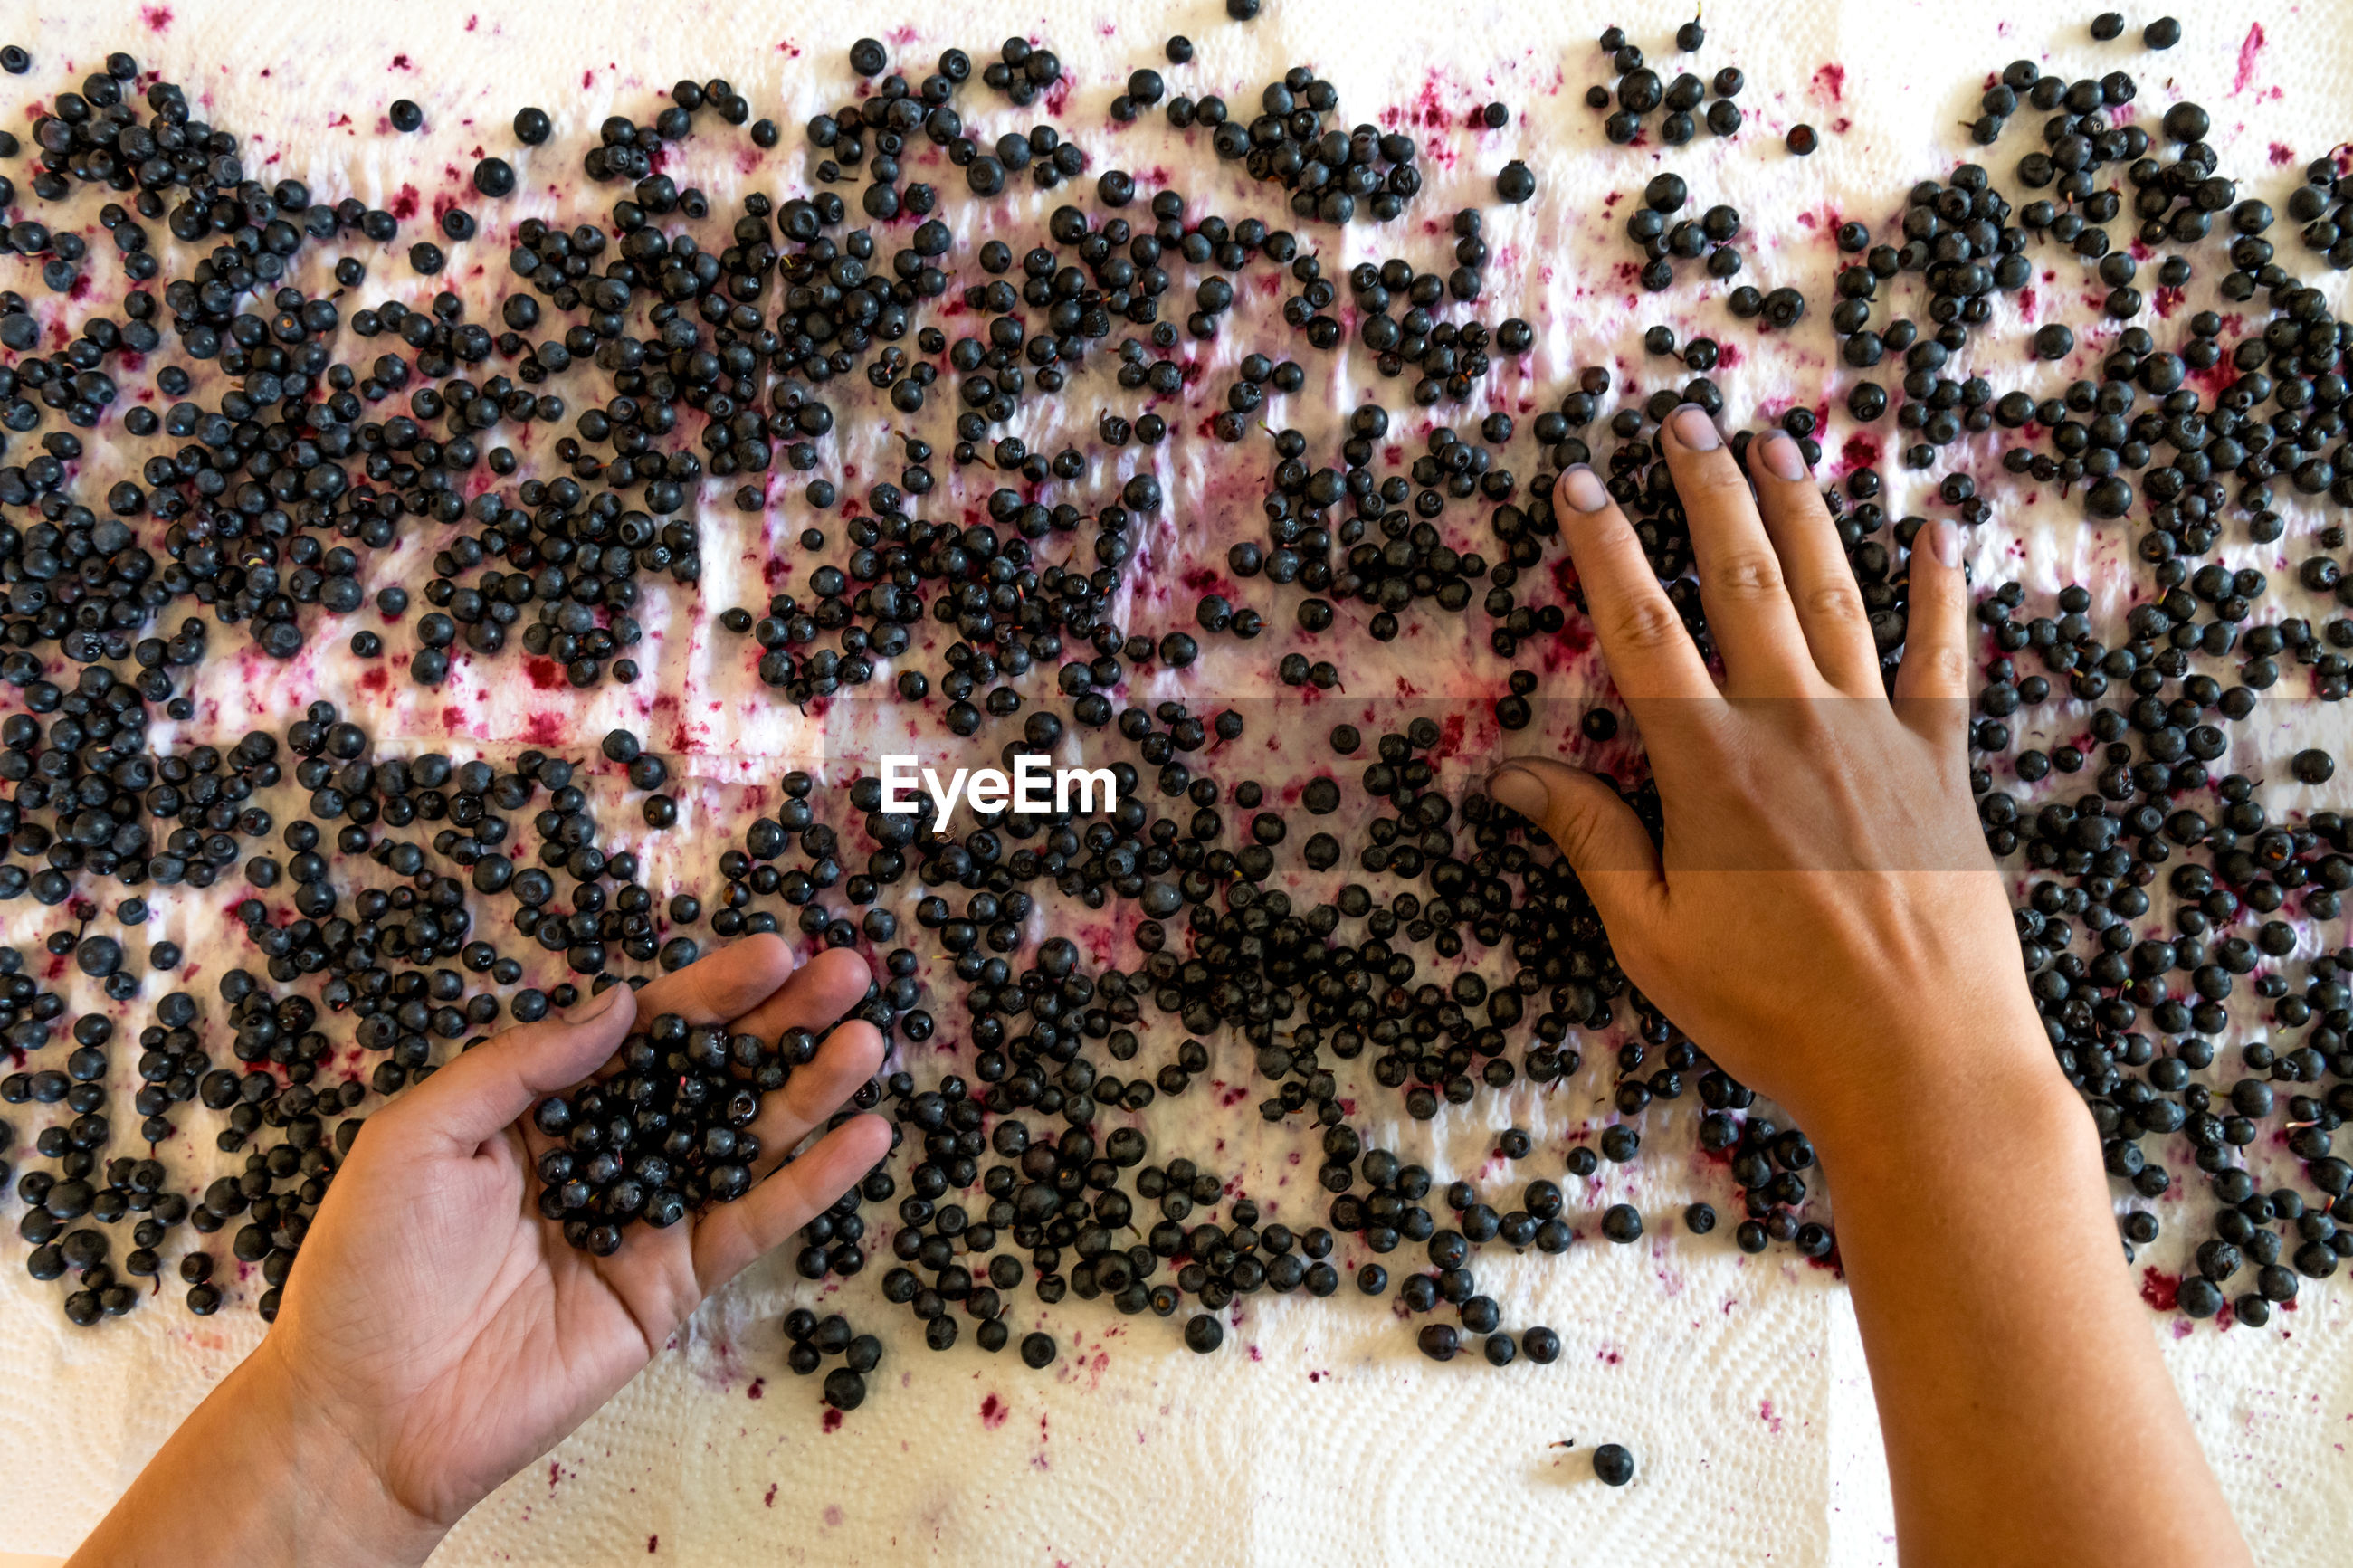 Cropped hands of mid adult woman cleaning blueberries on table